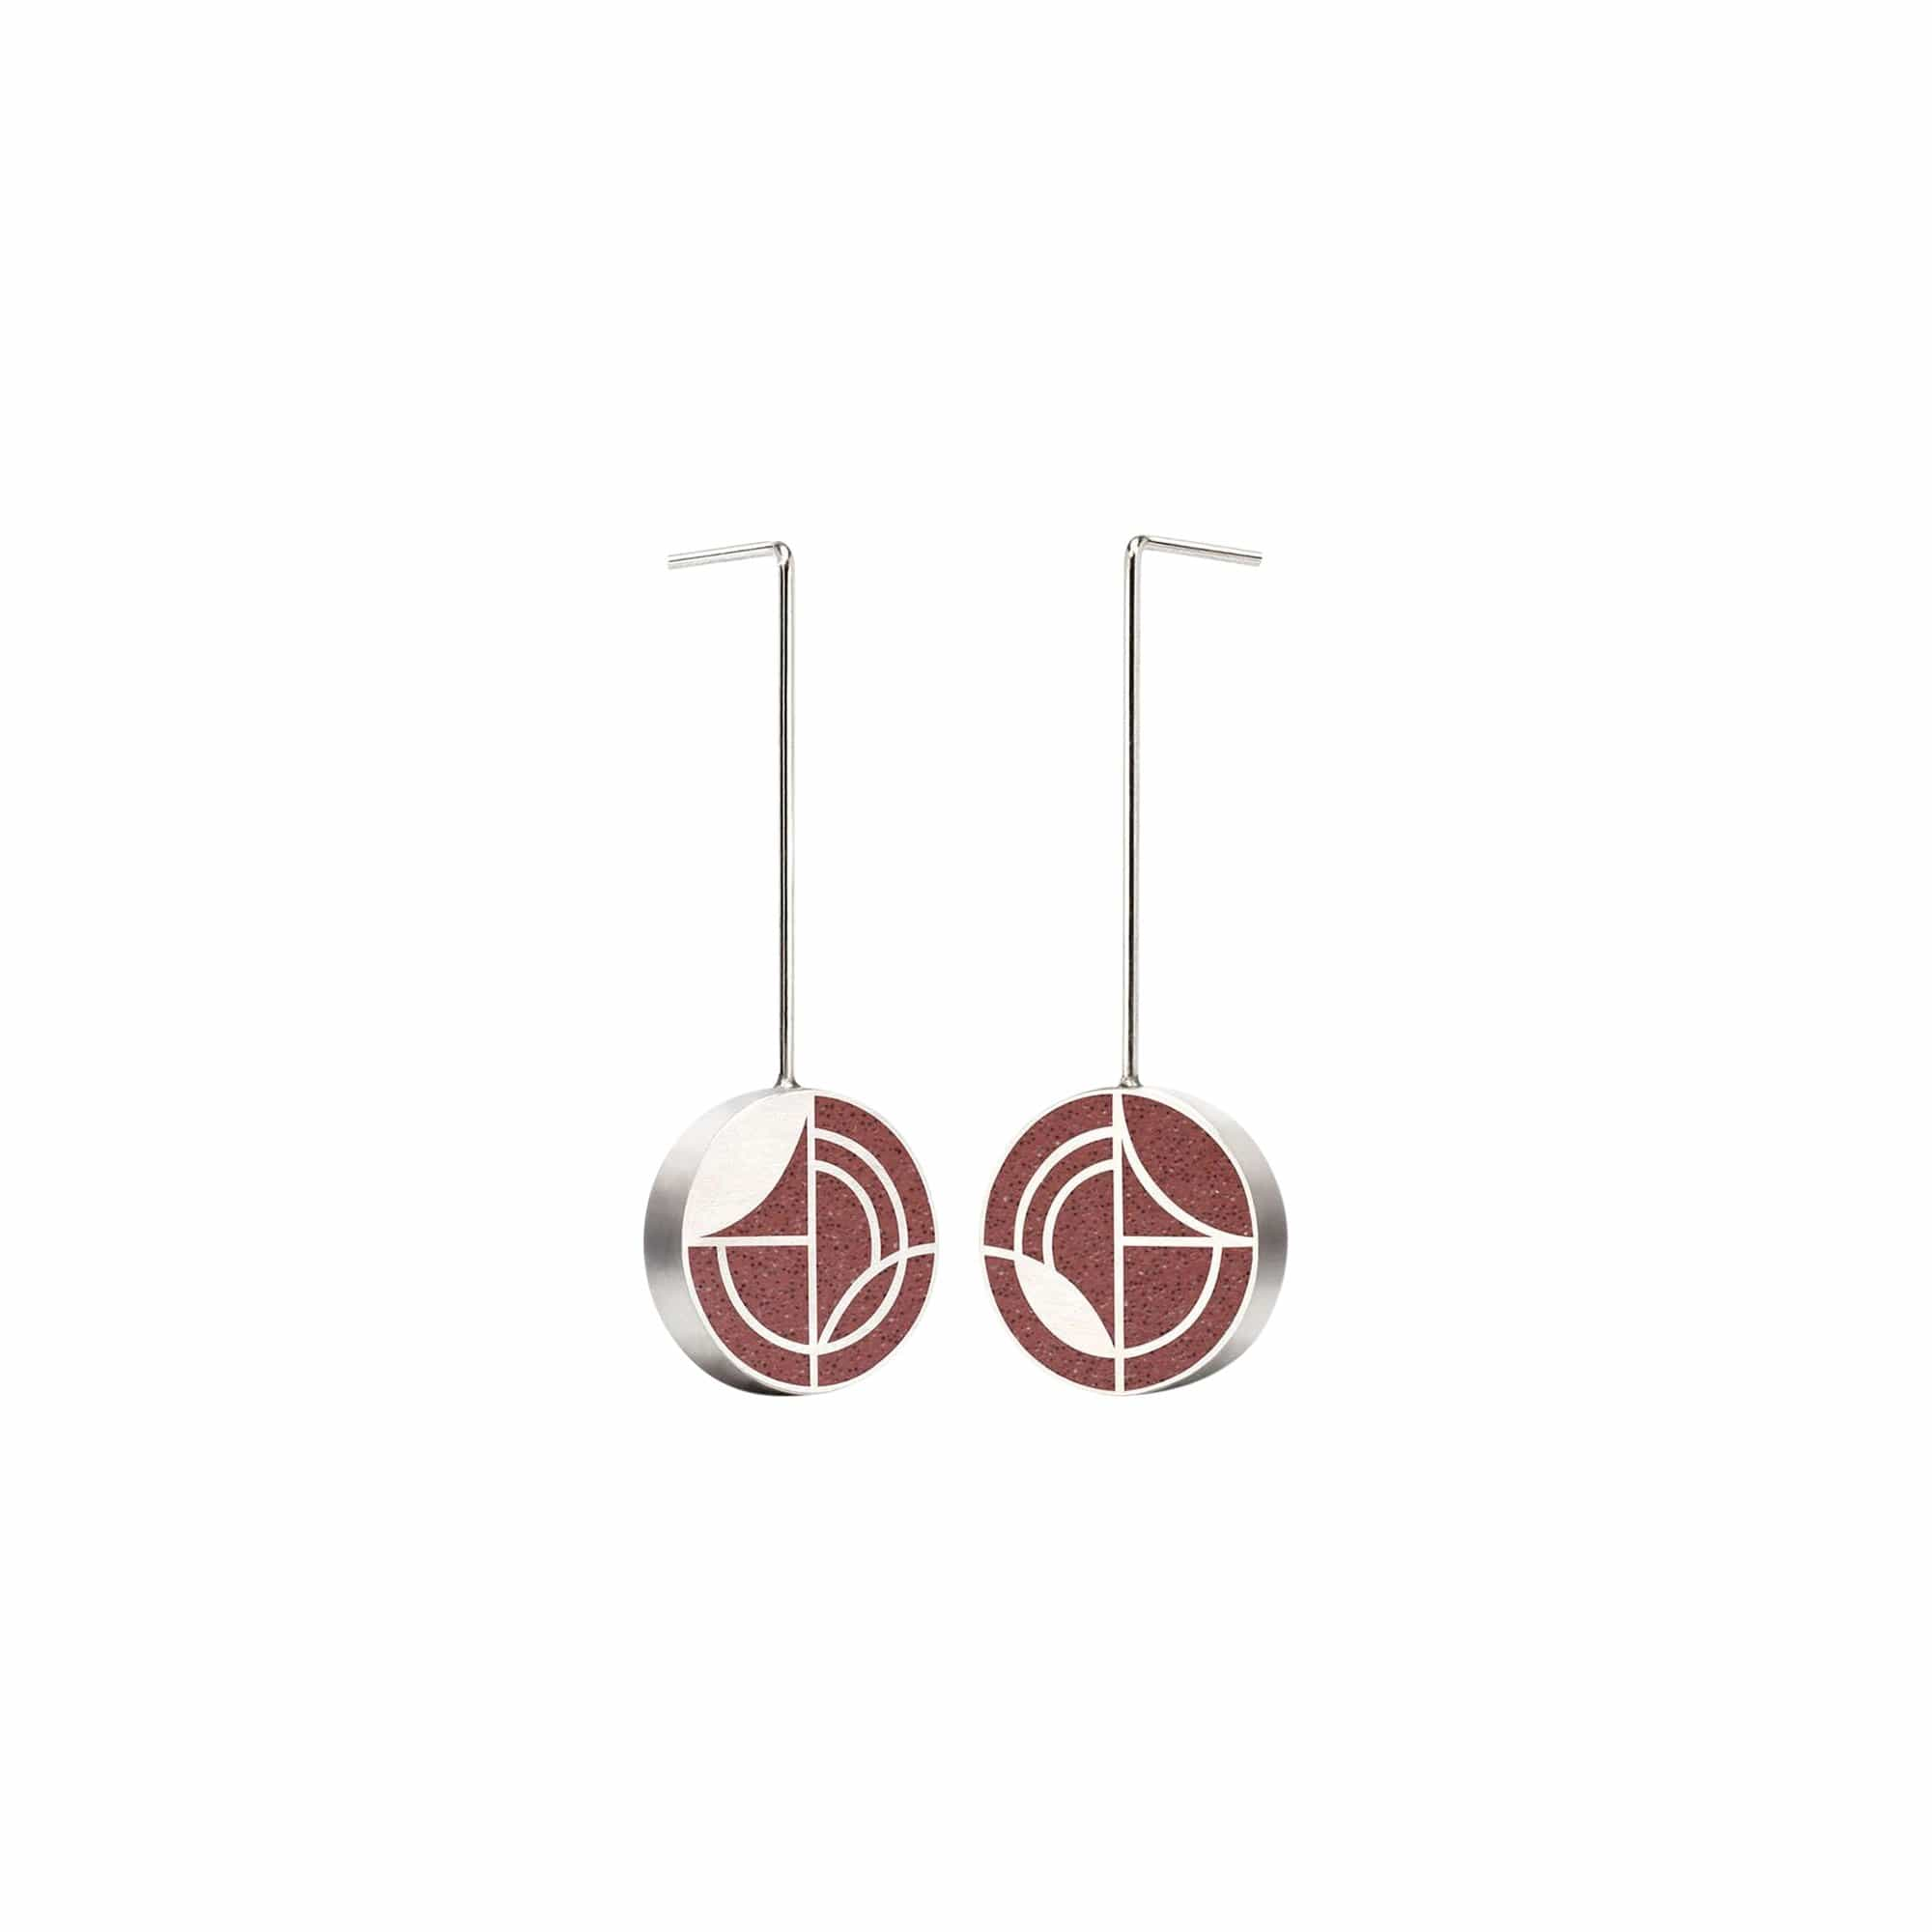 Konzuk Earrings TR - Taliesin Red Small Saguaro Concrete Earring Drops